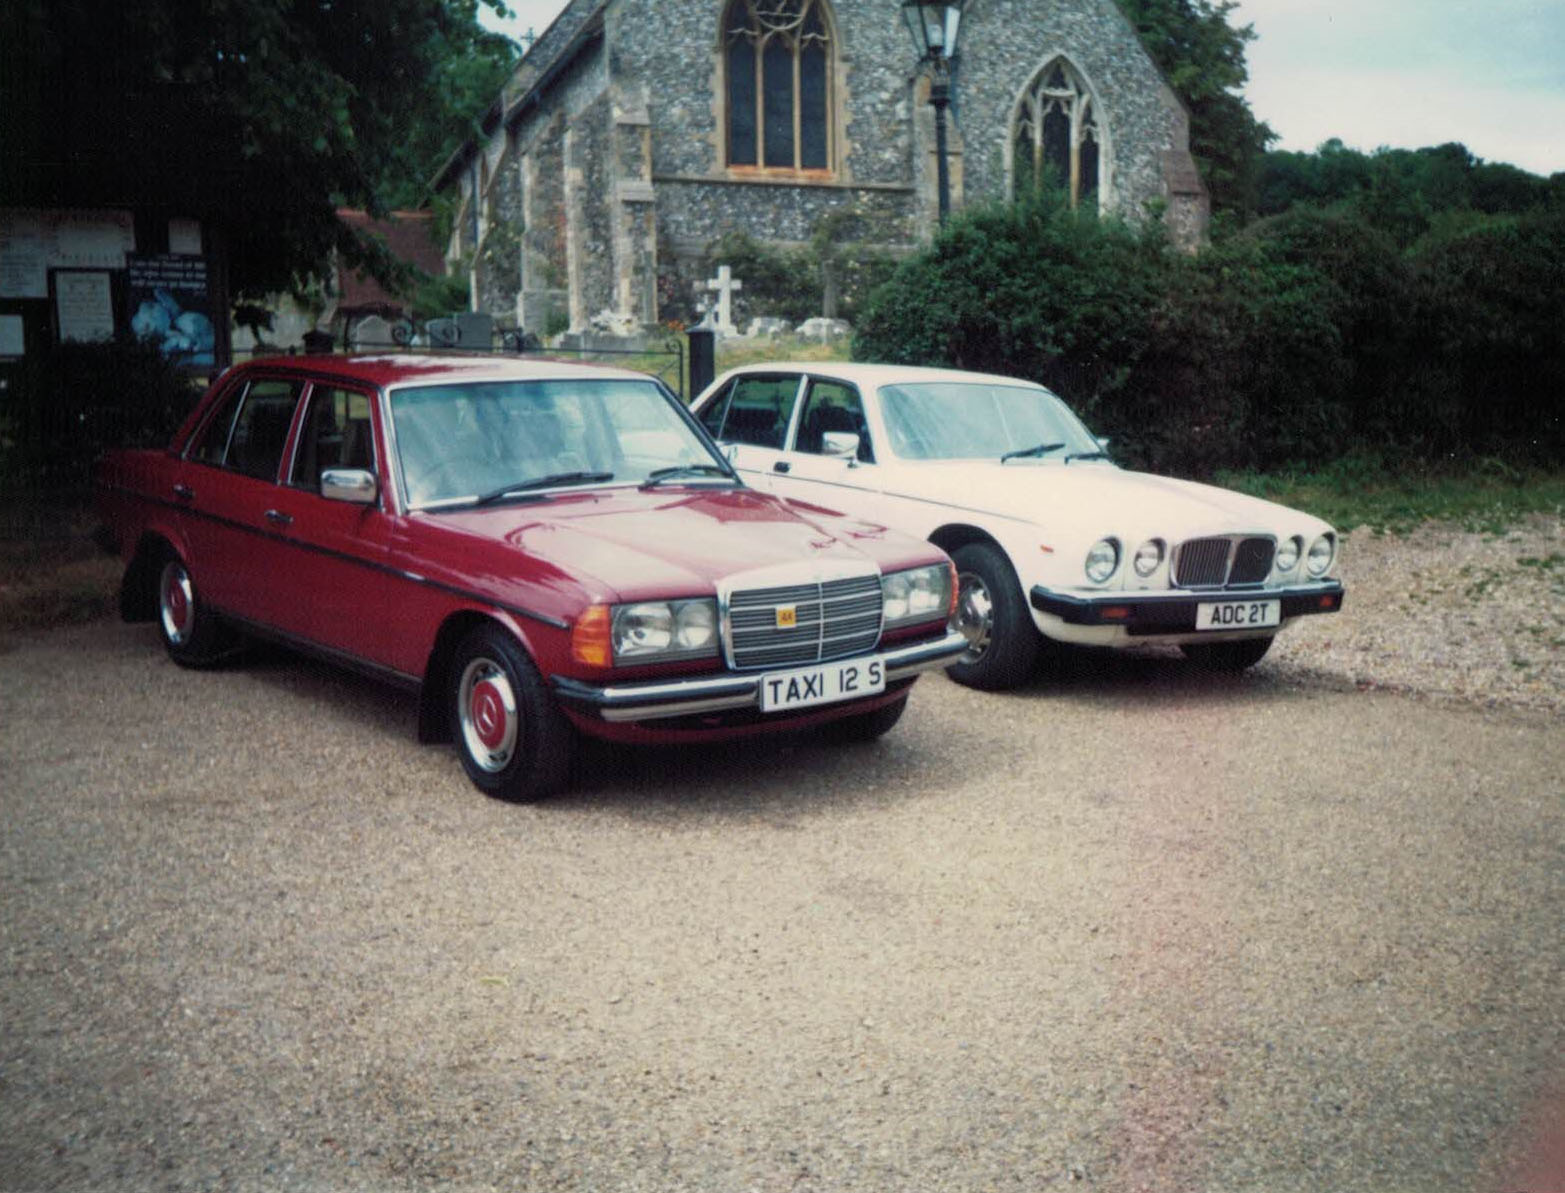 Taxis at Hughenden Church, High Wycombe - circa 1990